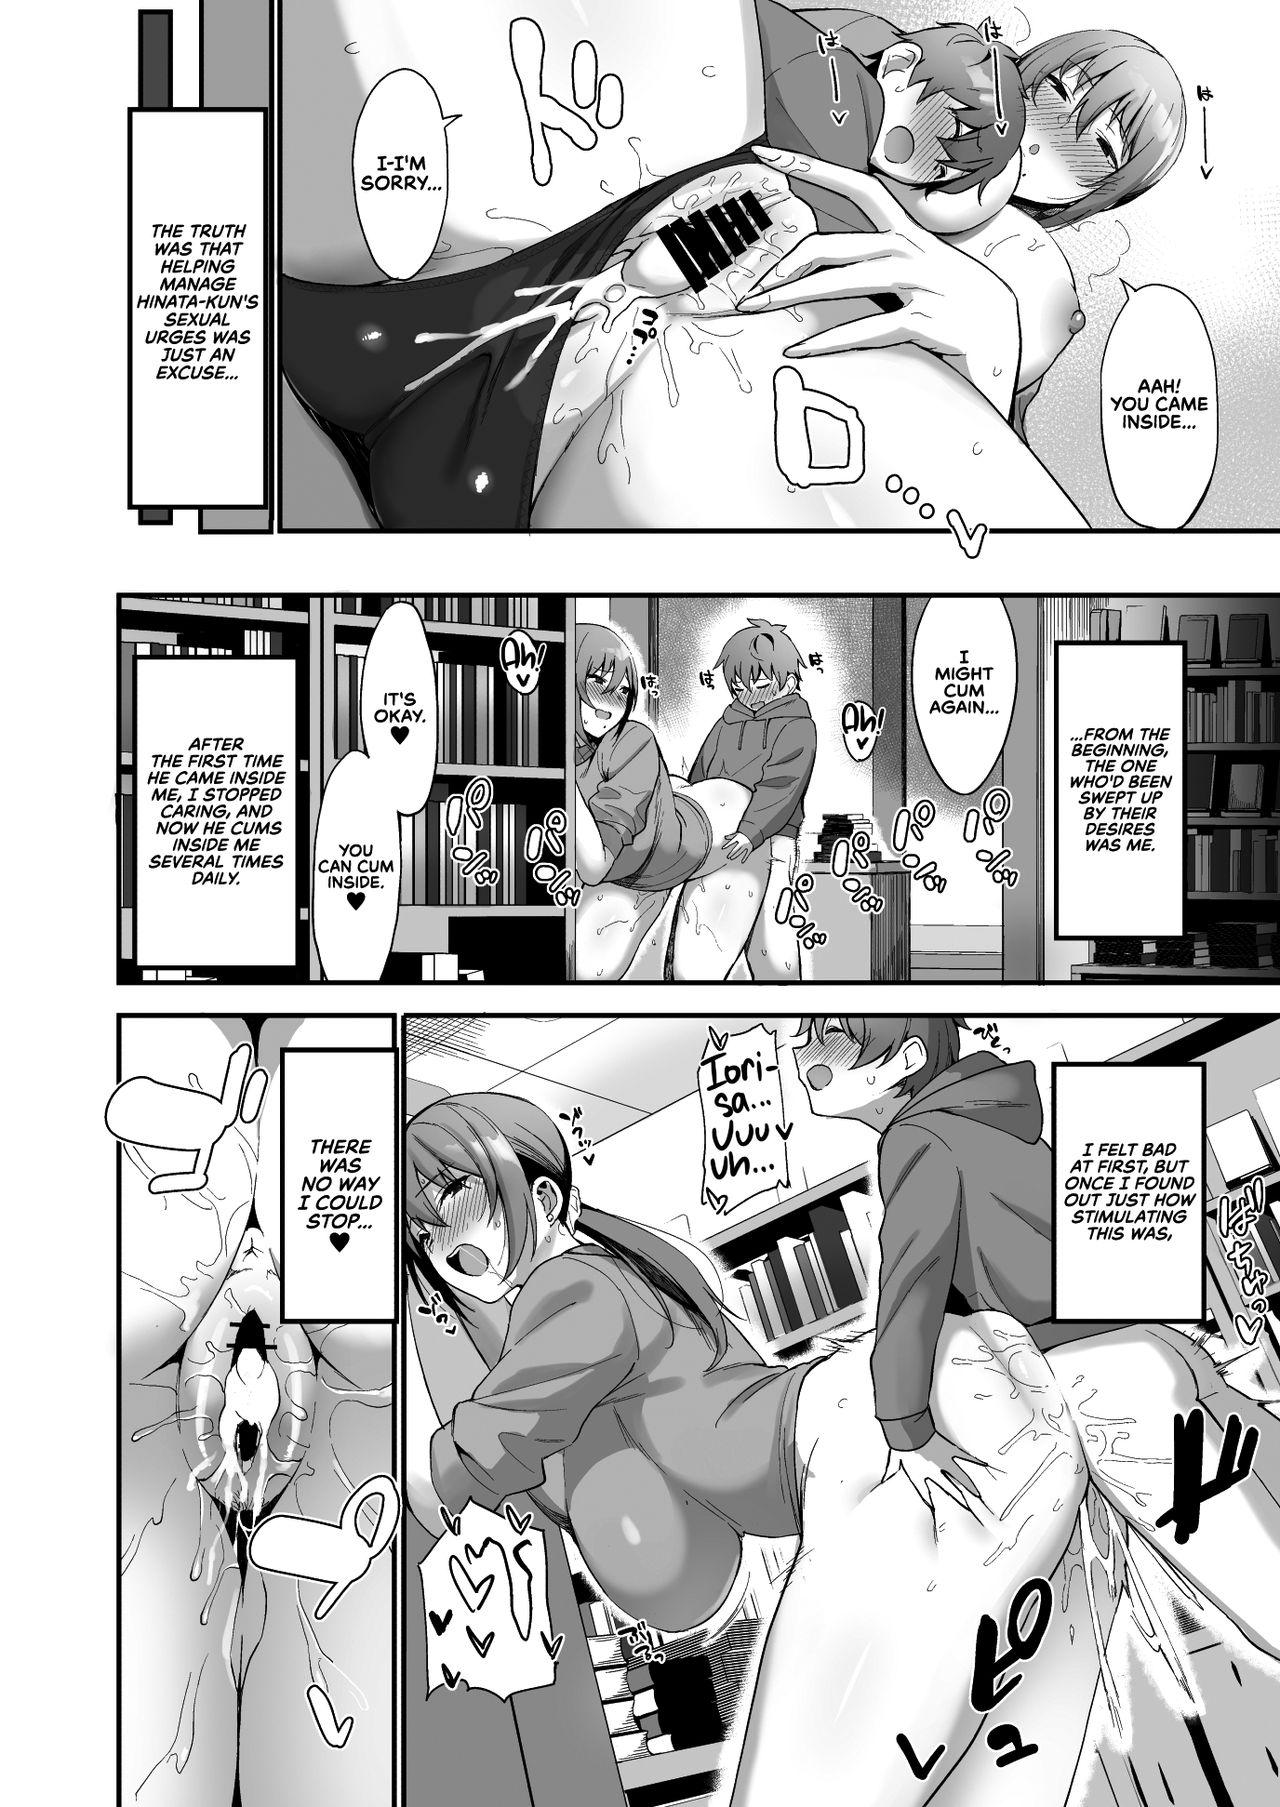 Furuhonya no Onee-san to   With The Lady From The Used Book Shop 26